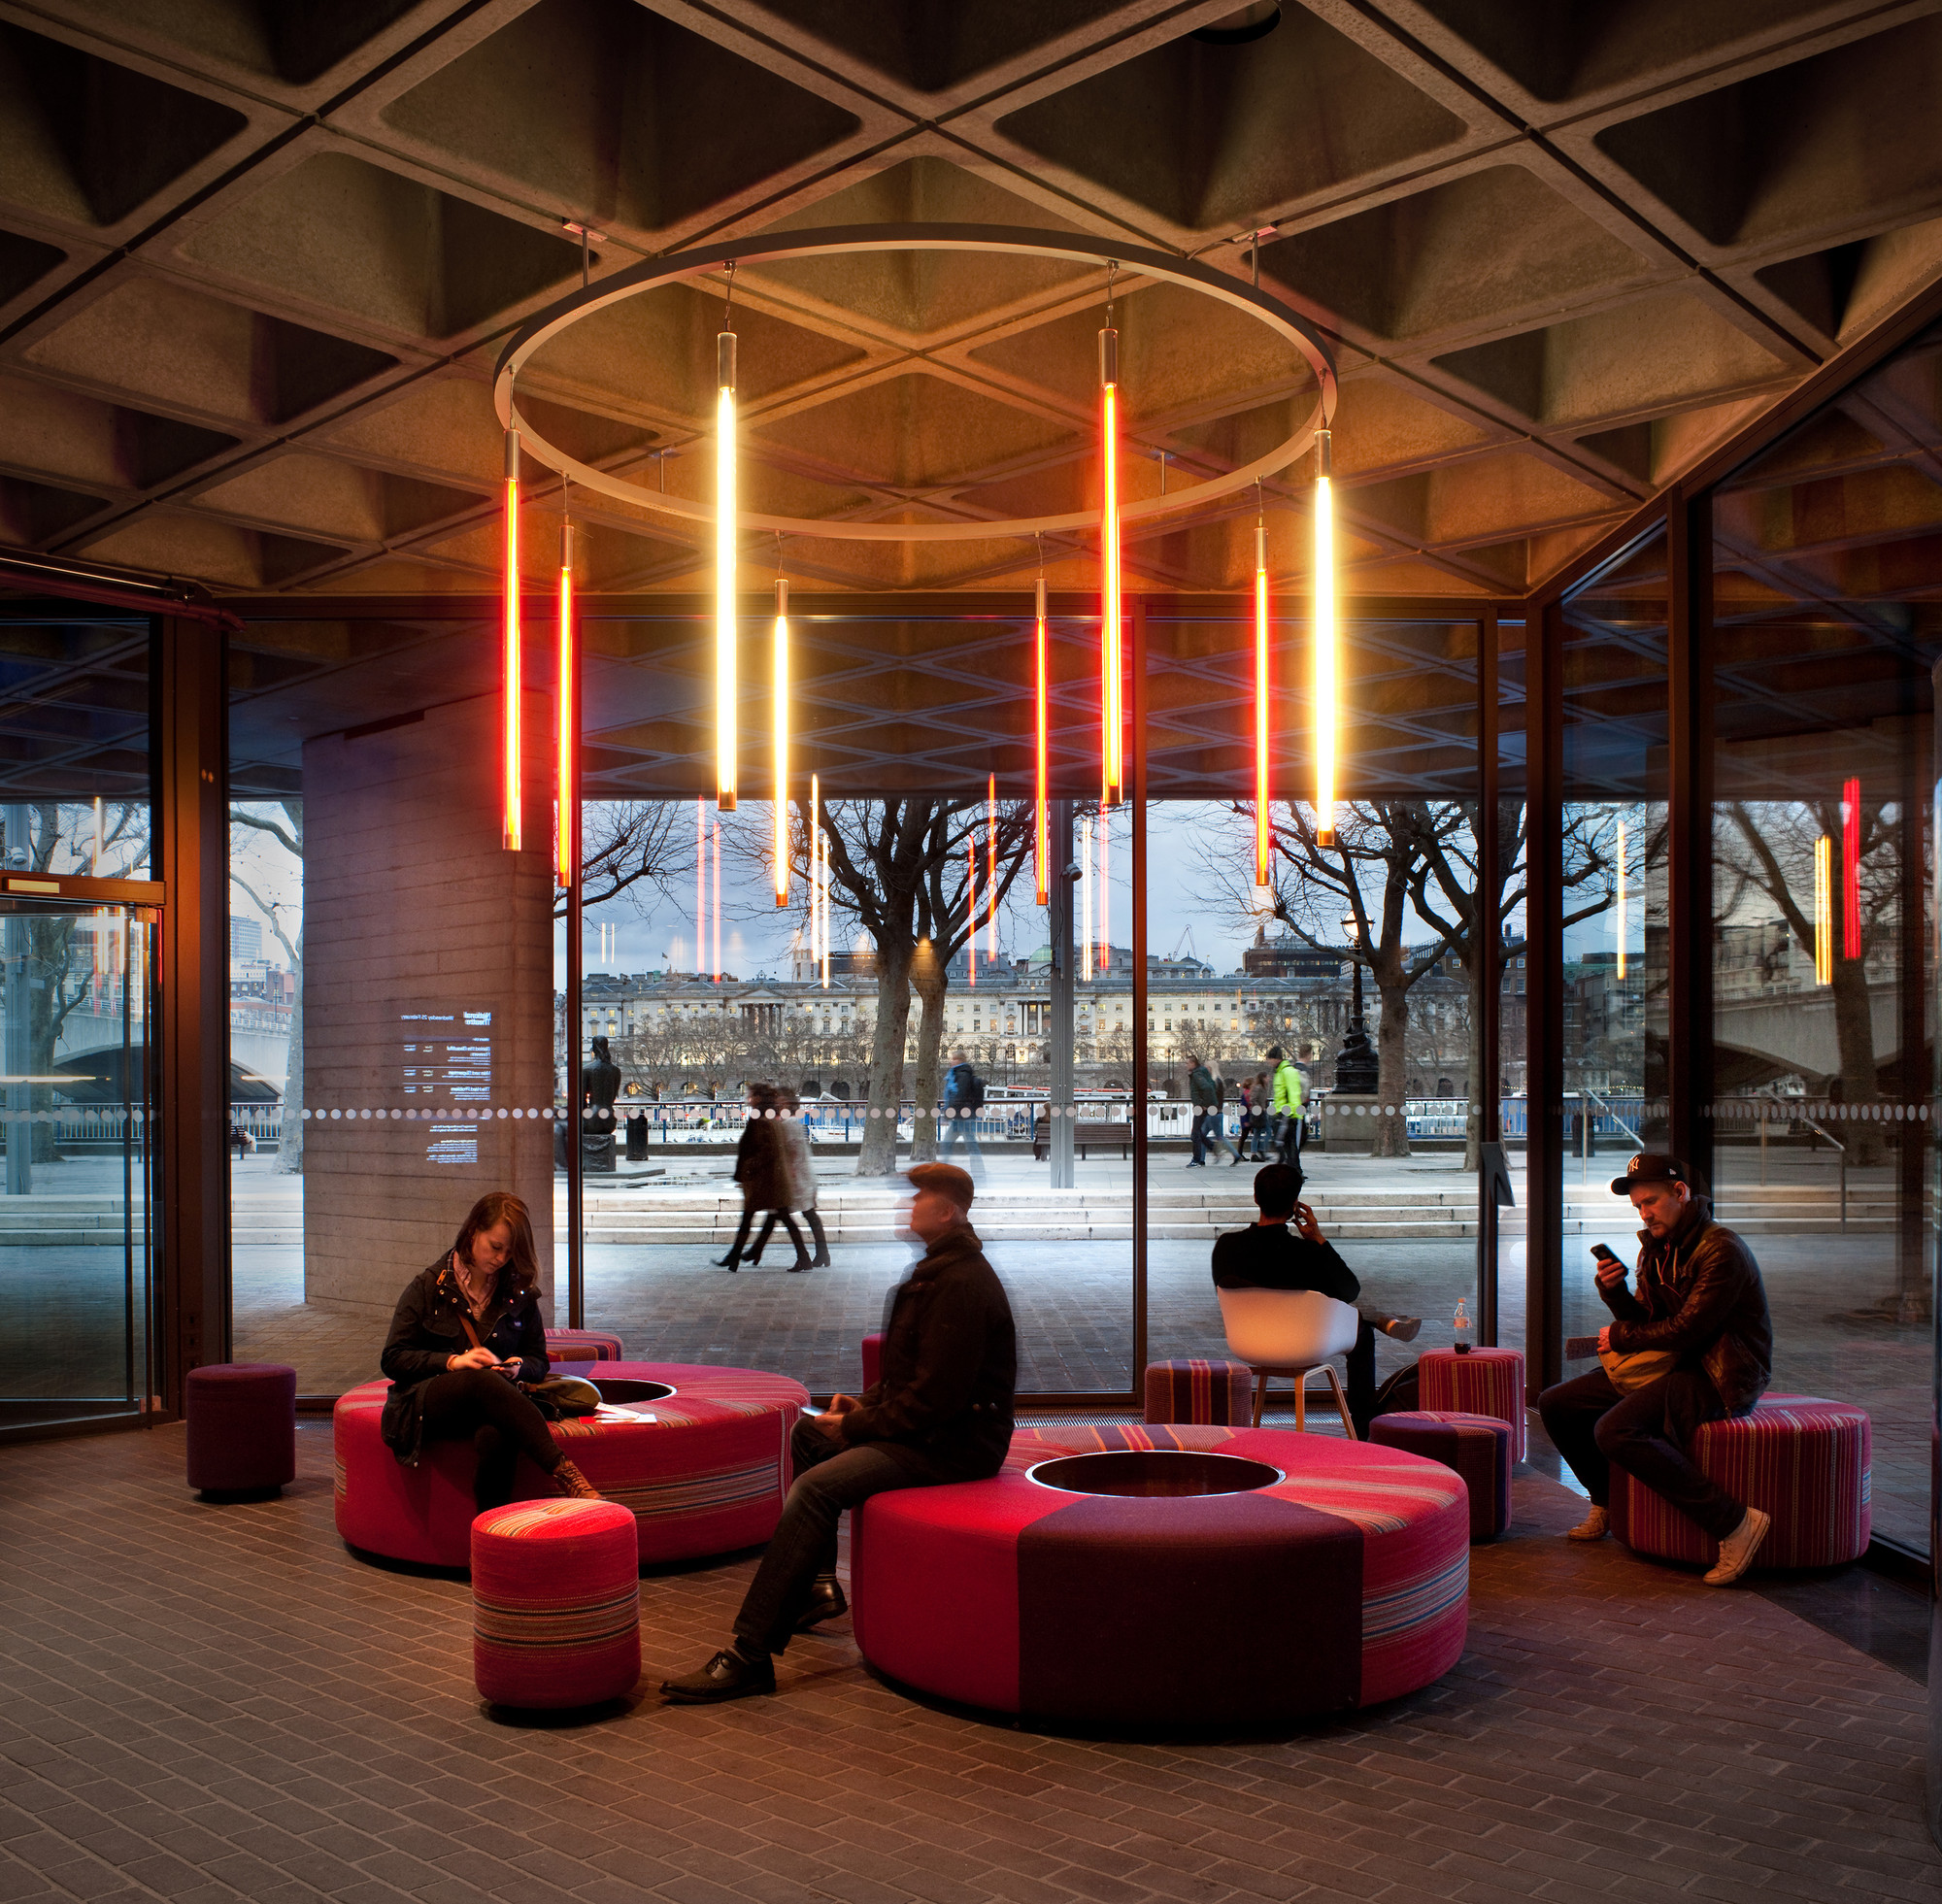 Gallery of National Theatre / Haworth Tompkins - 16